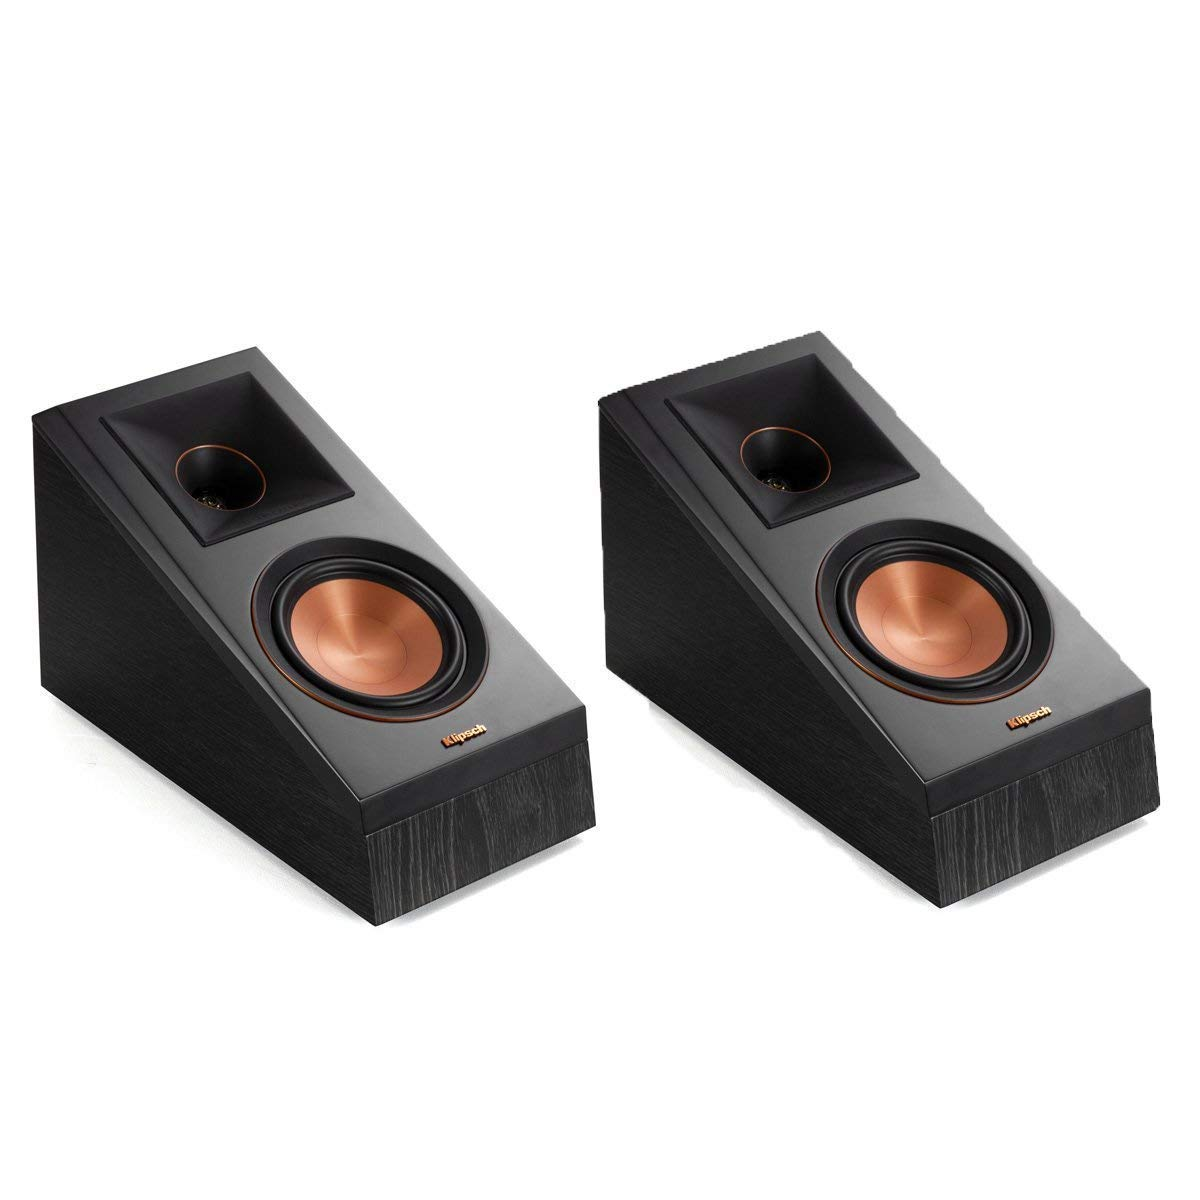 Klipsch RP-500SA Reference Premiere Dolby Atmos Speakers - Pair (Ebony) (Renewed) by Klipsch